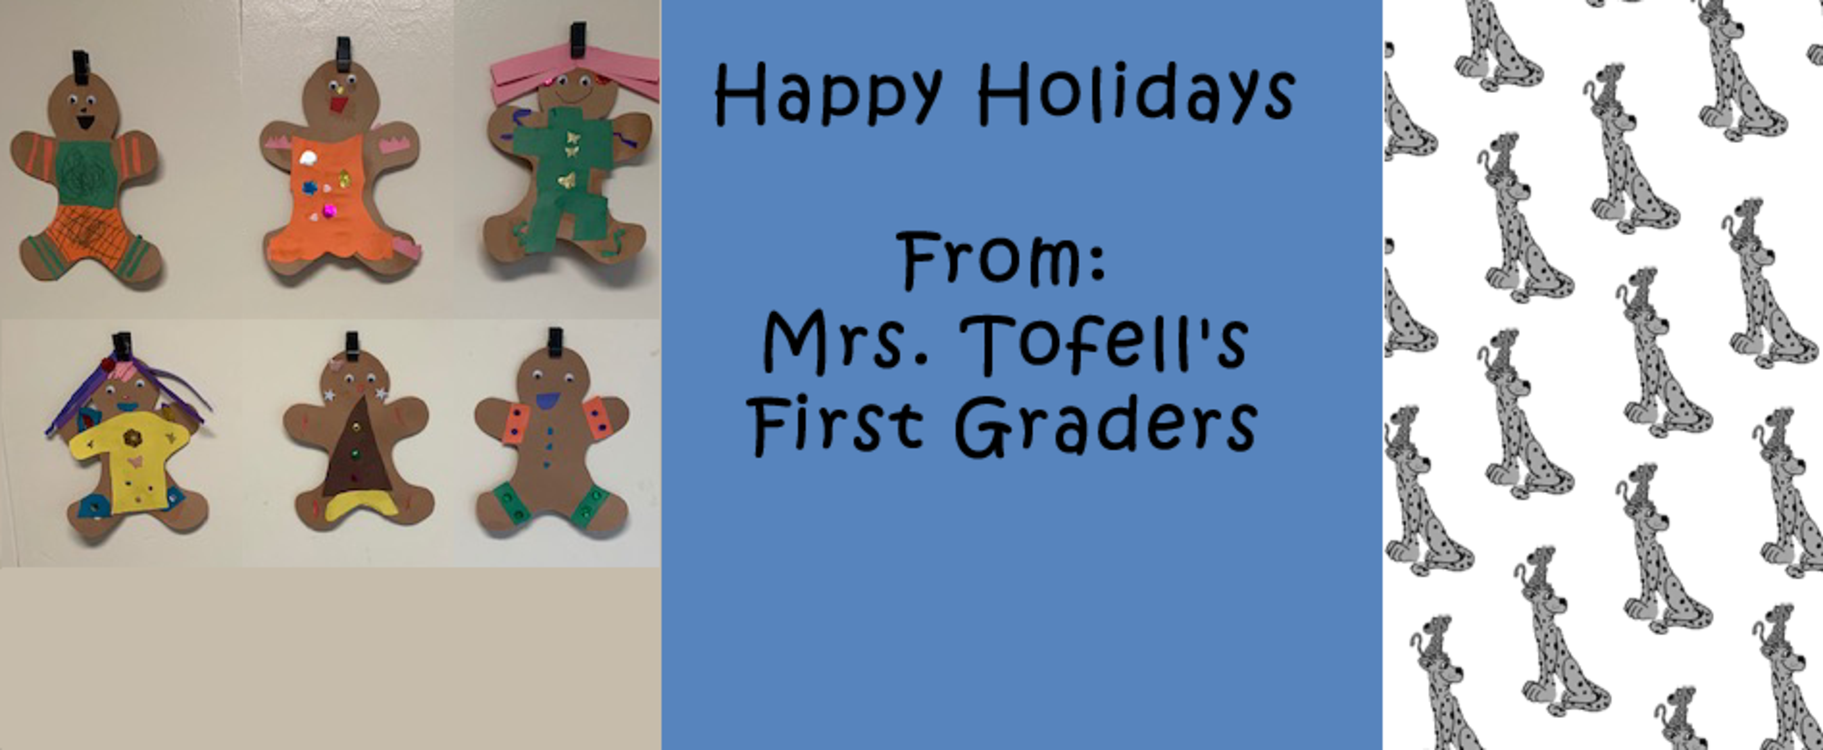 Happy Holidays from Mrs. Tofell's First Graders